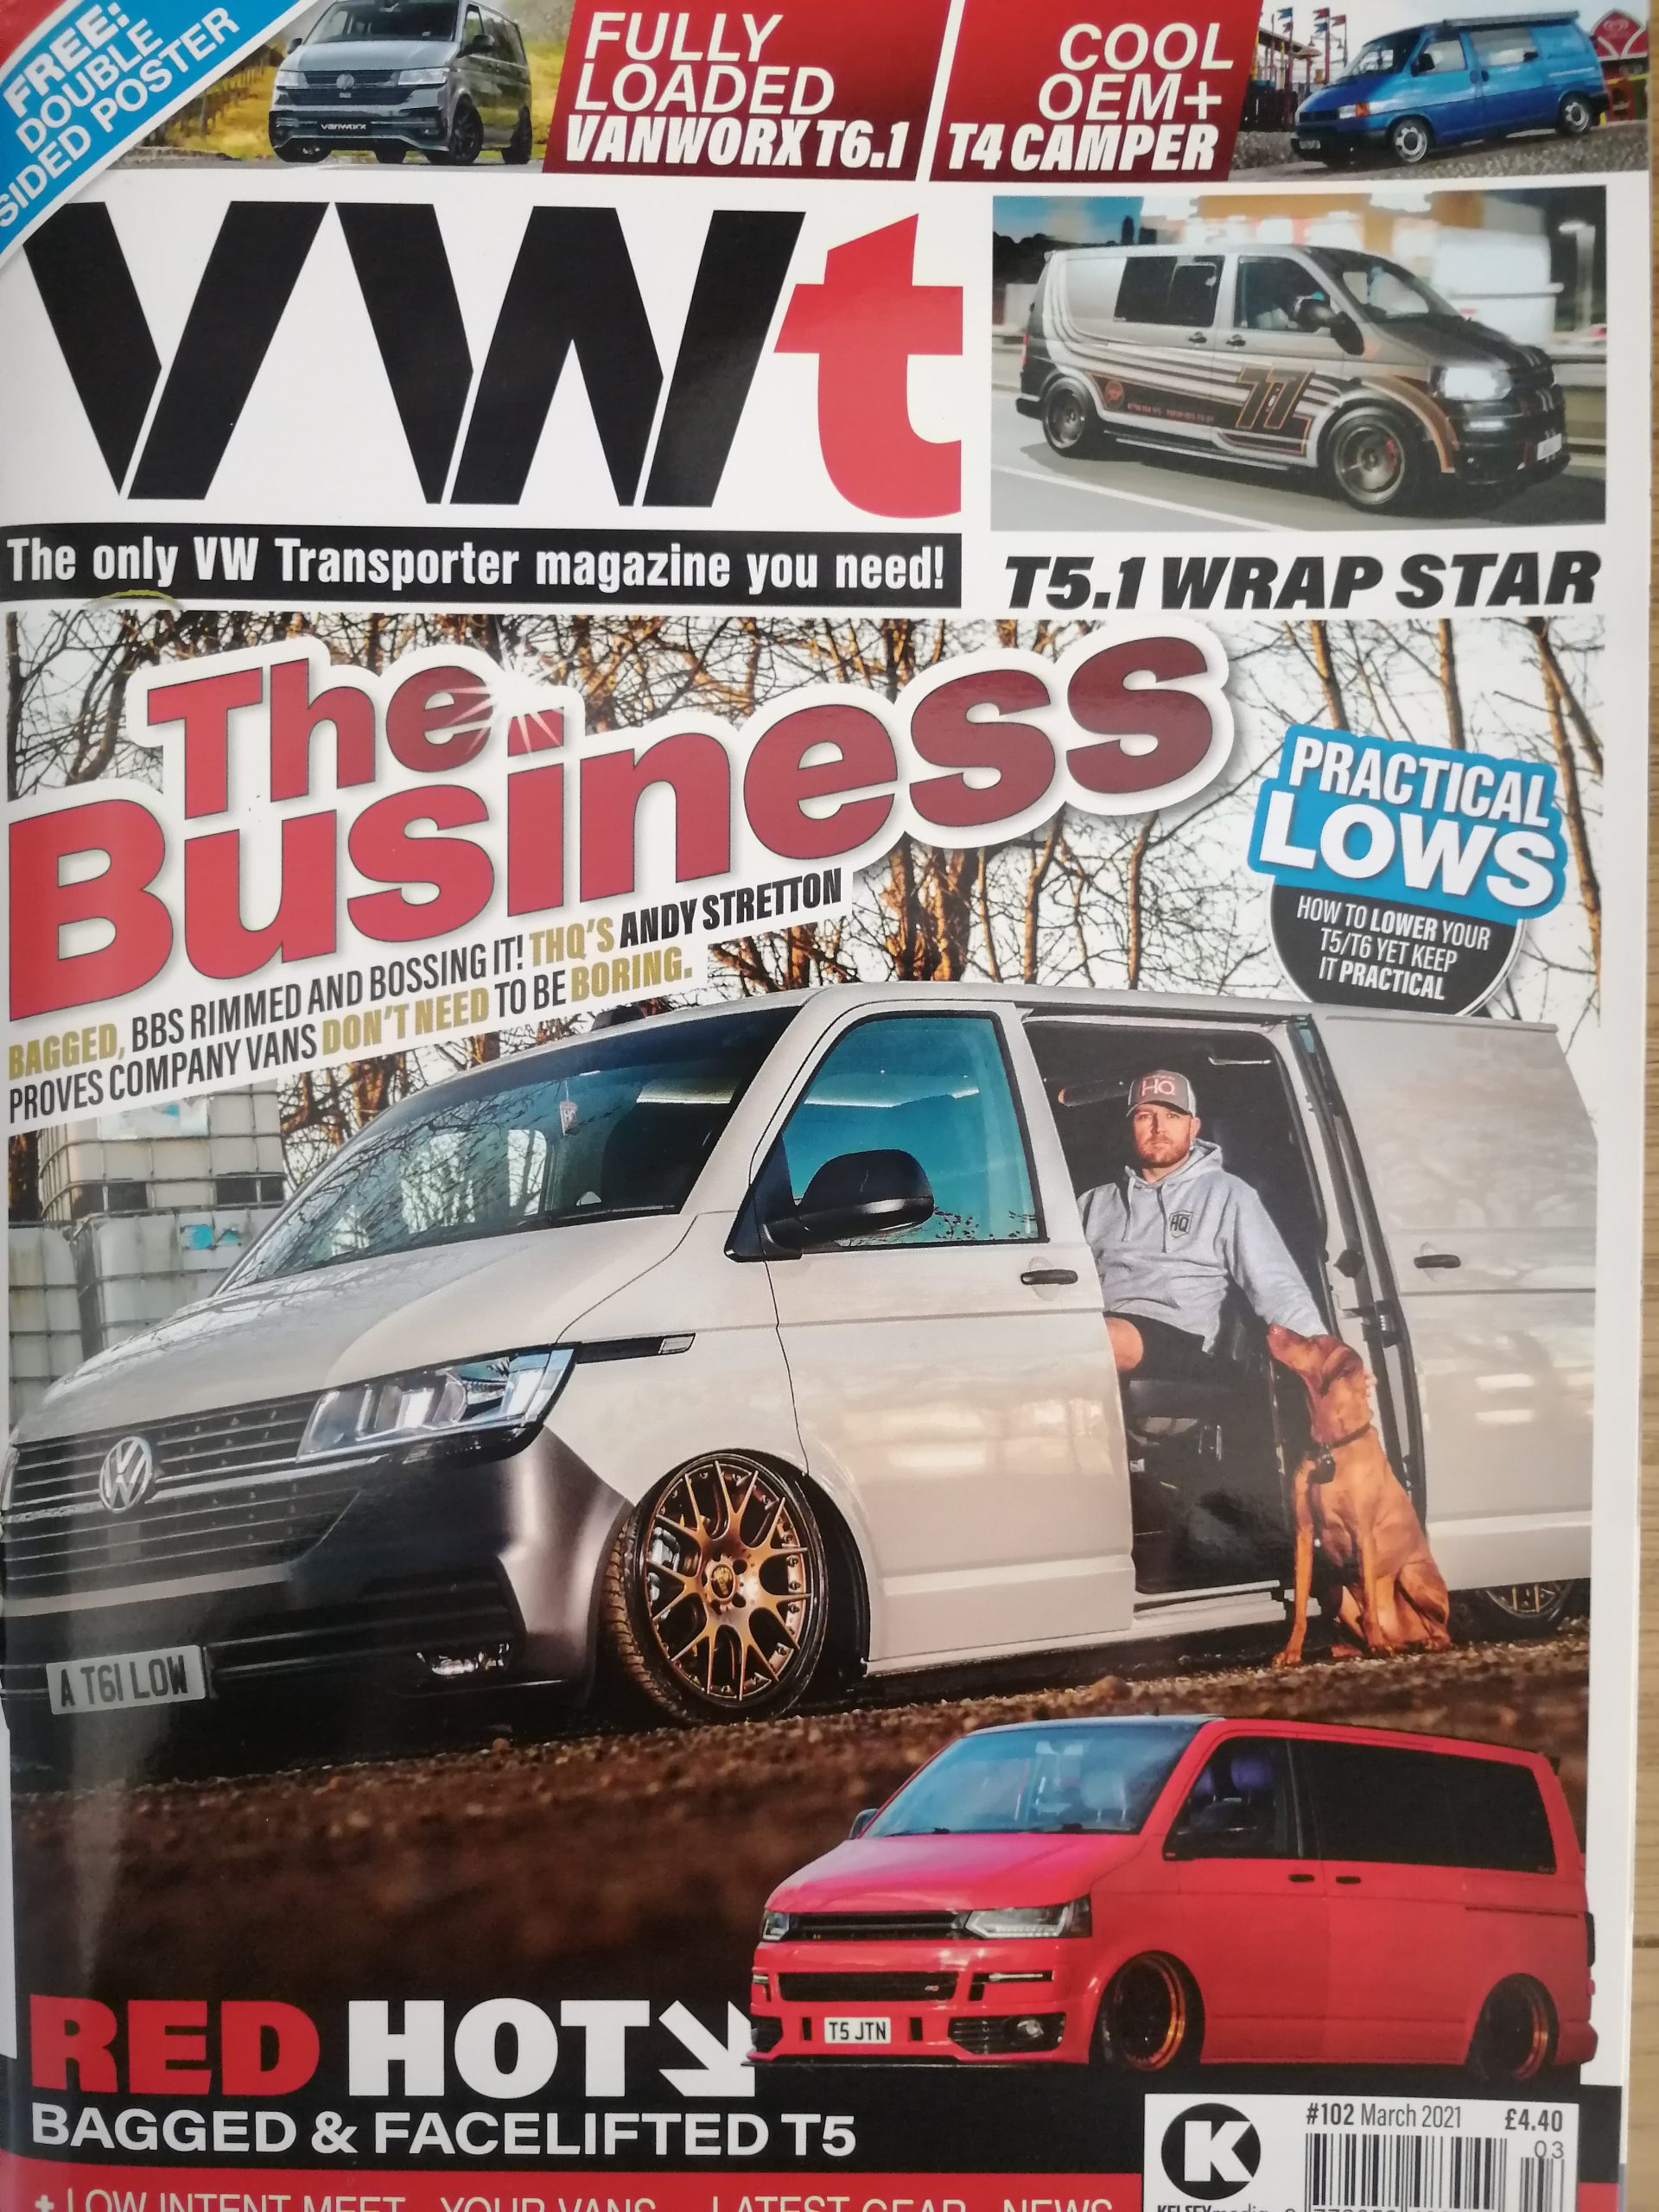 Daily Grind: Popup Joes Feature in VWT Magazine